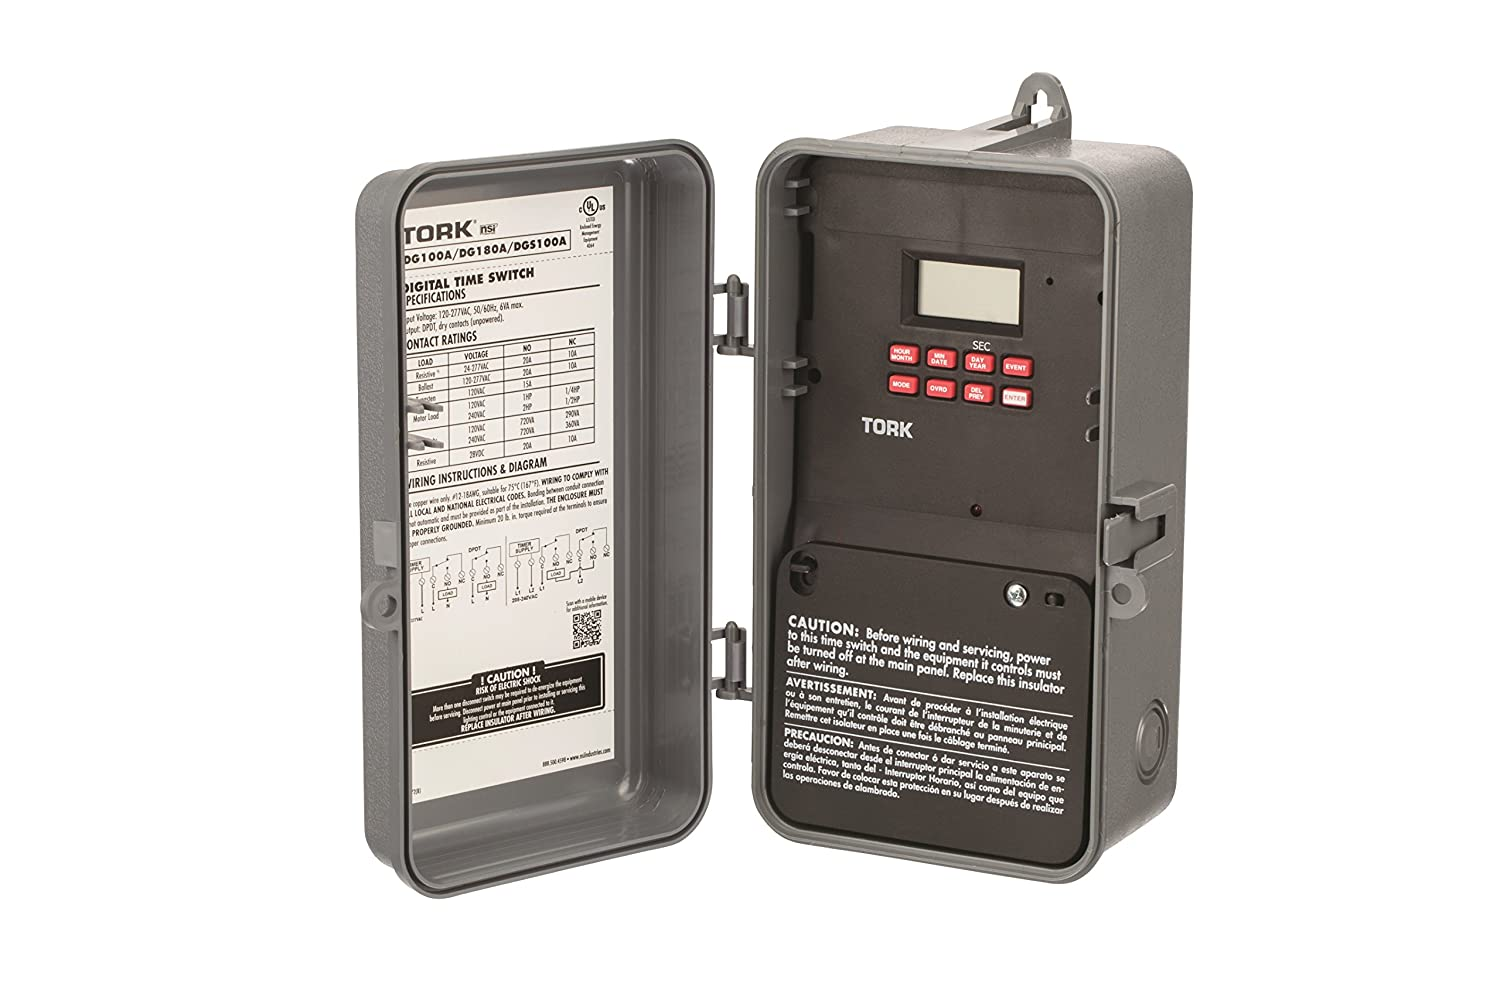 81Th5QKMbmL._SL1500_ dg100 series multipurpose control 365 7 day time switch, 120 277  at aneh.co